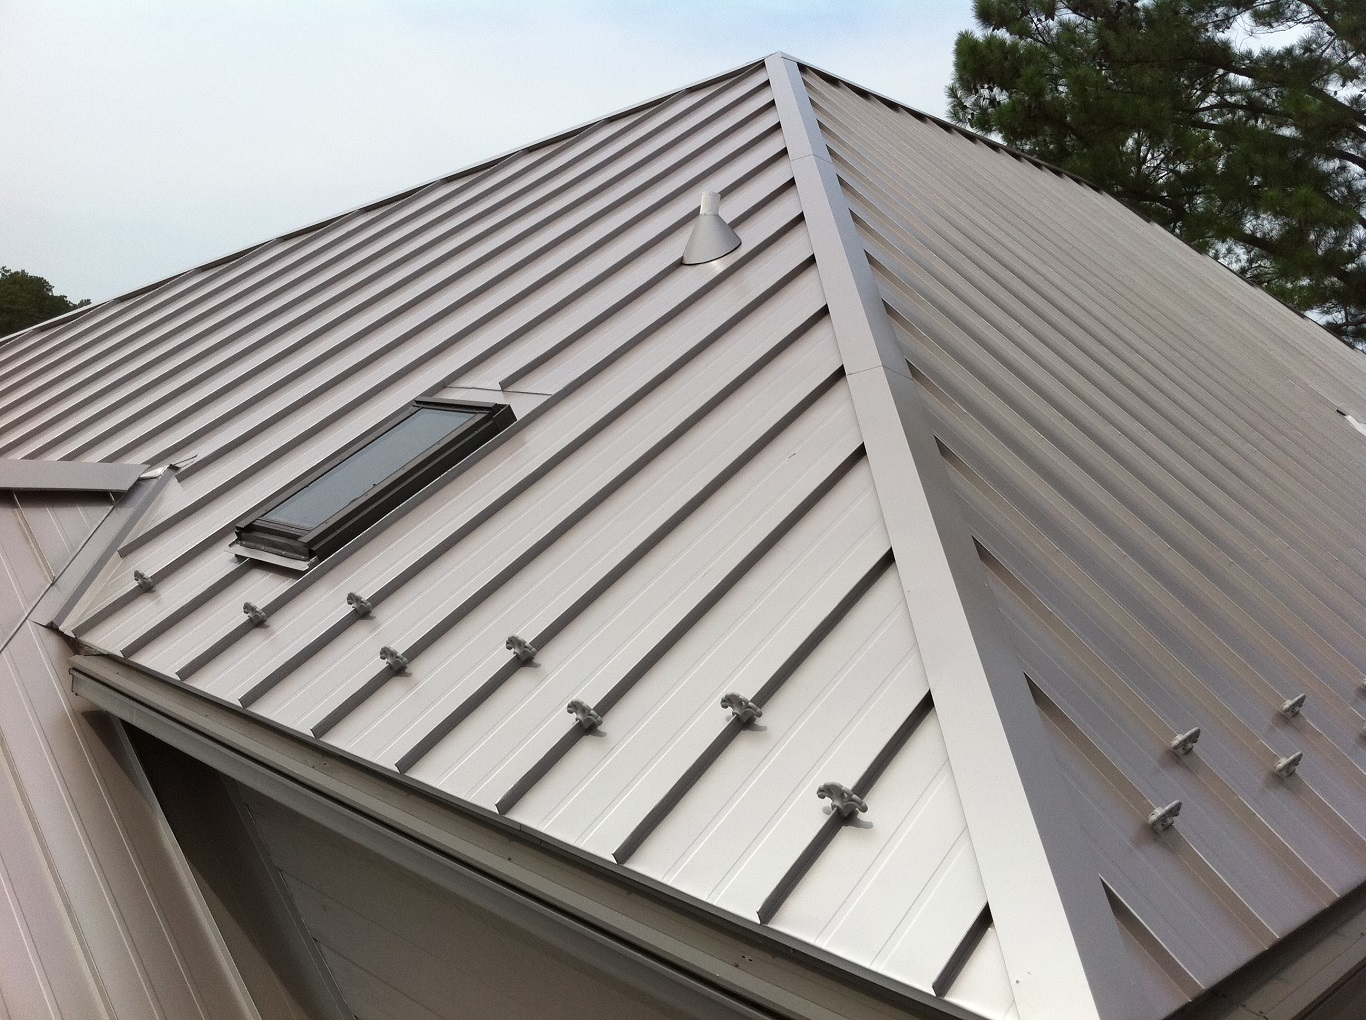 How to Install a Metal Roof Over Shingles